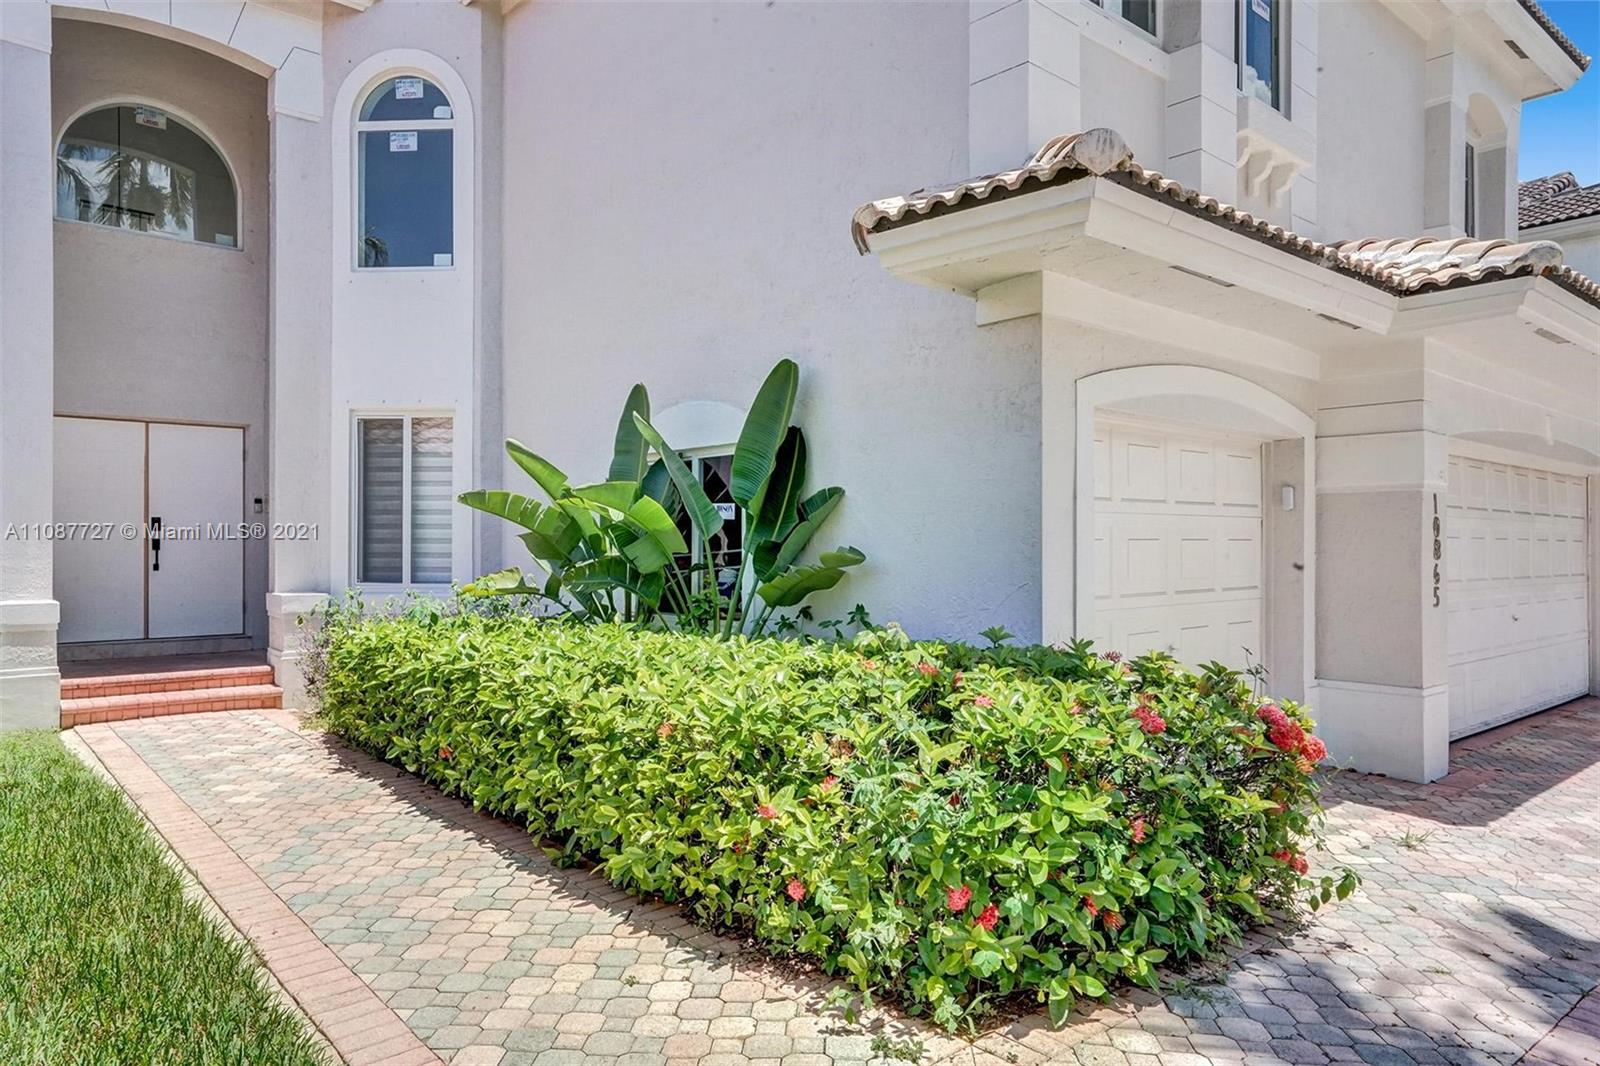 10865 NW 73rd Ter  For Sale A11087727, FL